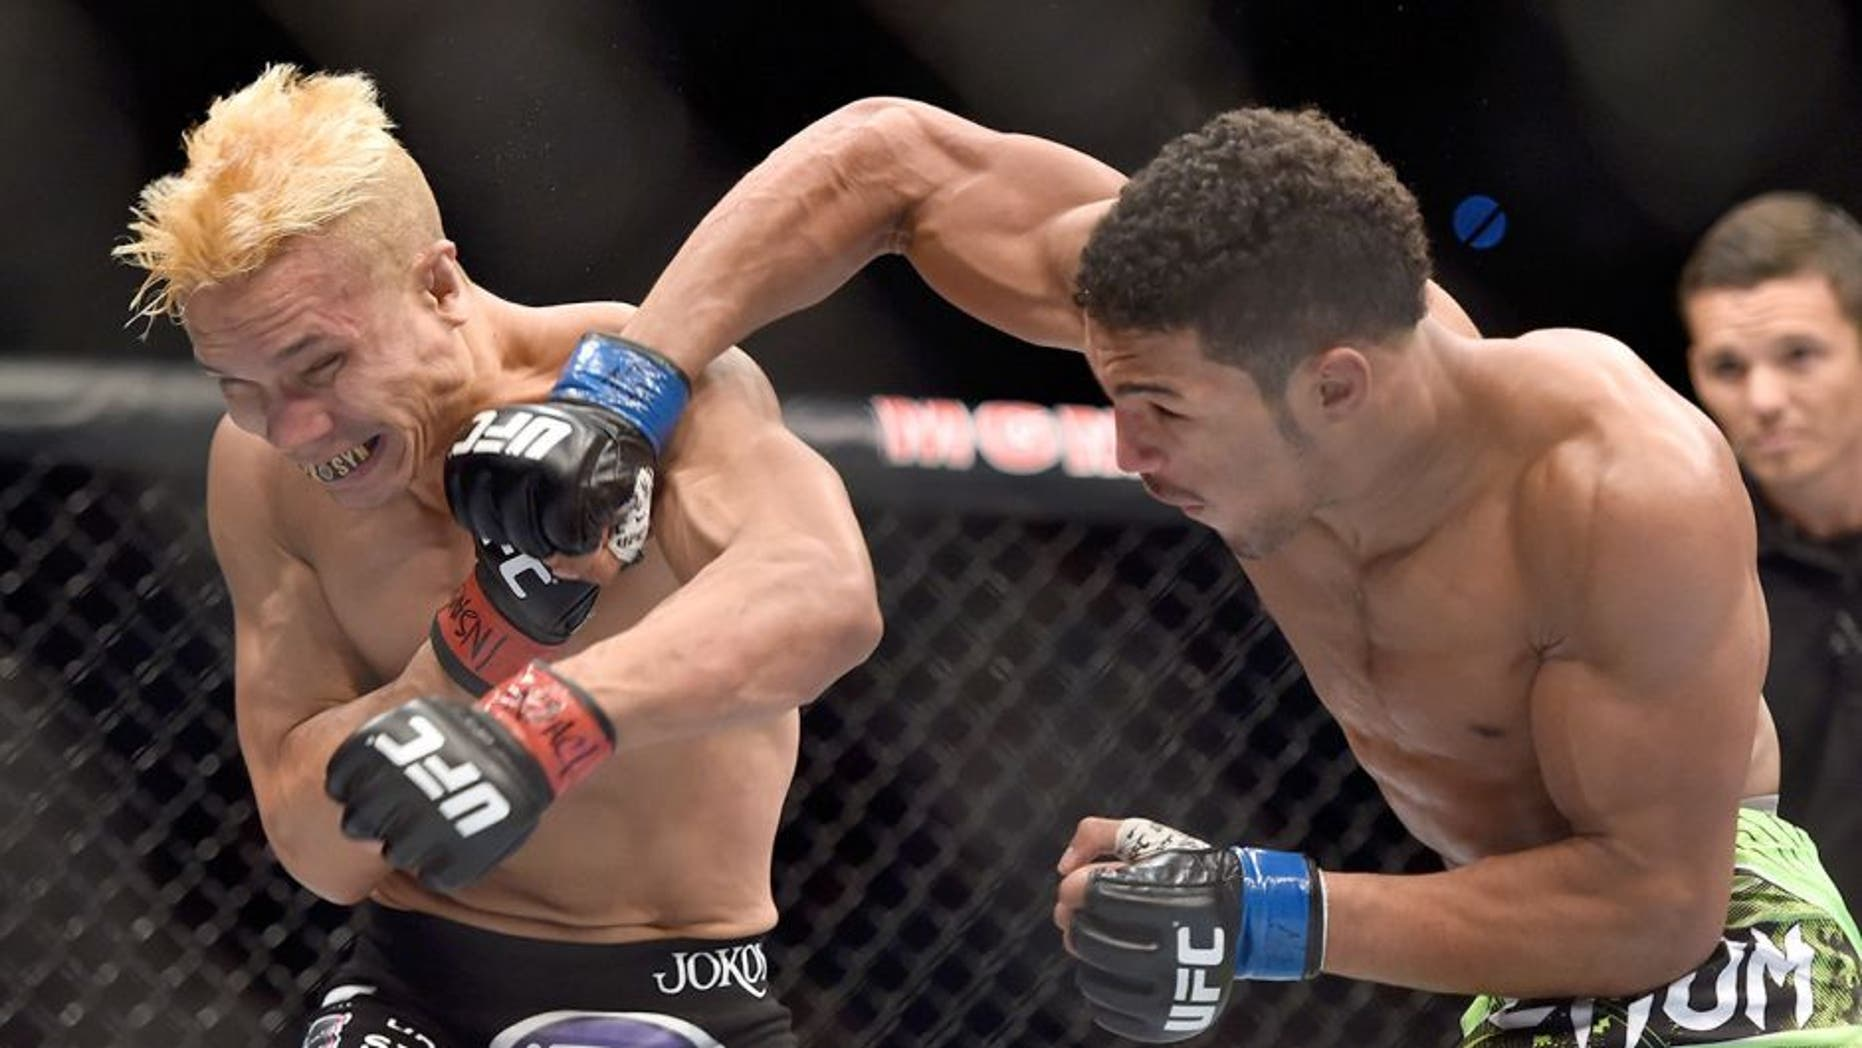 LAS VEGAS, NV - SEPTEMBER 27: Kevin Lee punches Jon Tuck in their lightweight fight during the UFC 178 event inside the MGM Grand Garden Arena on September 27, 2014 in Las Vegas, Nevada. (Photo by Jeff Bottari/Zuffa LLC/Zuffa LLC via Getty Images)